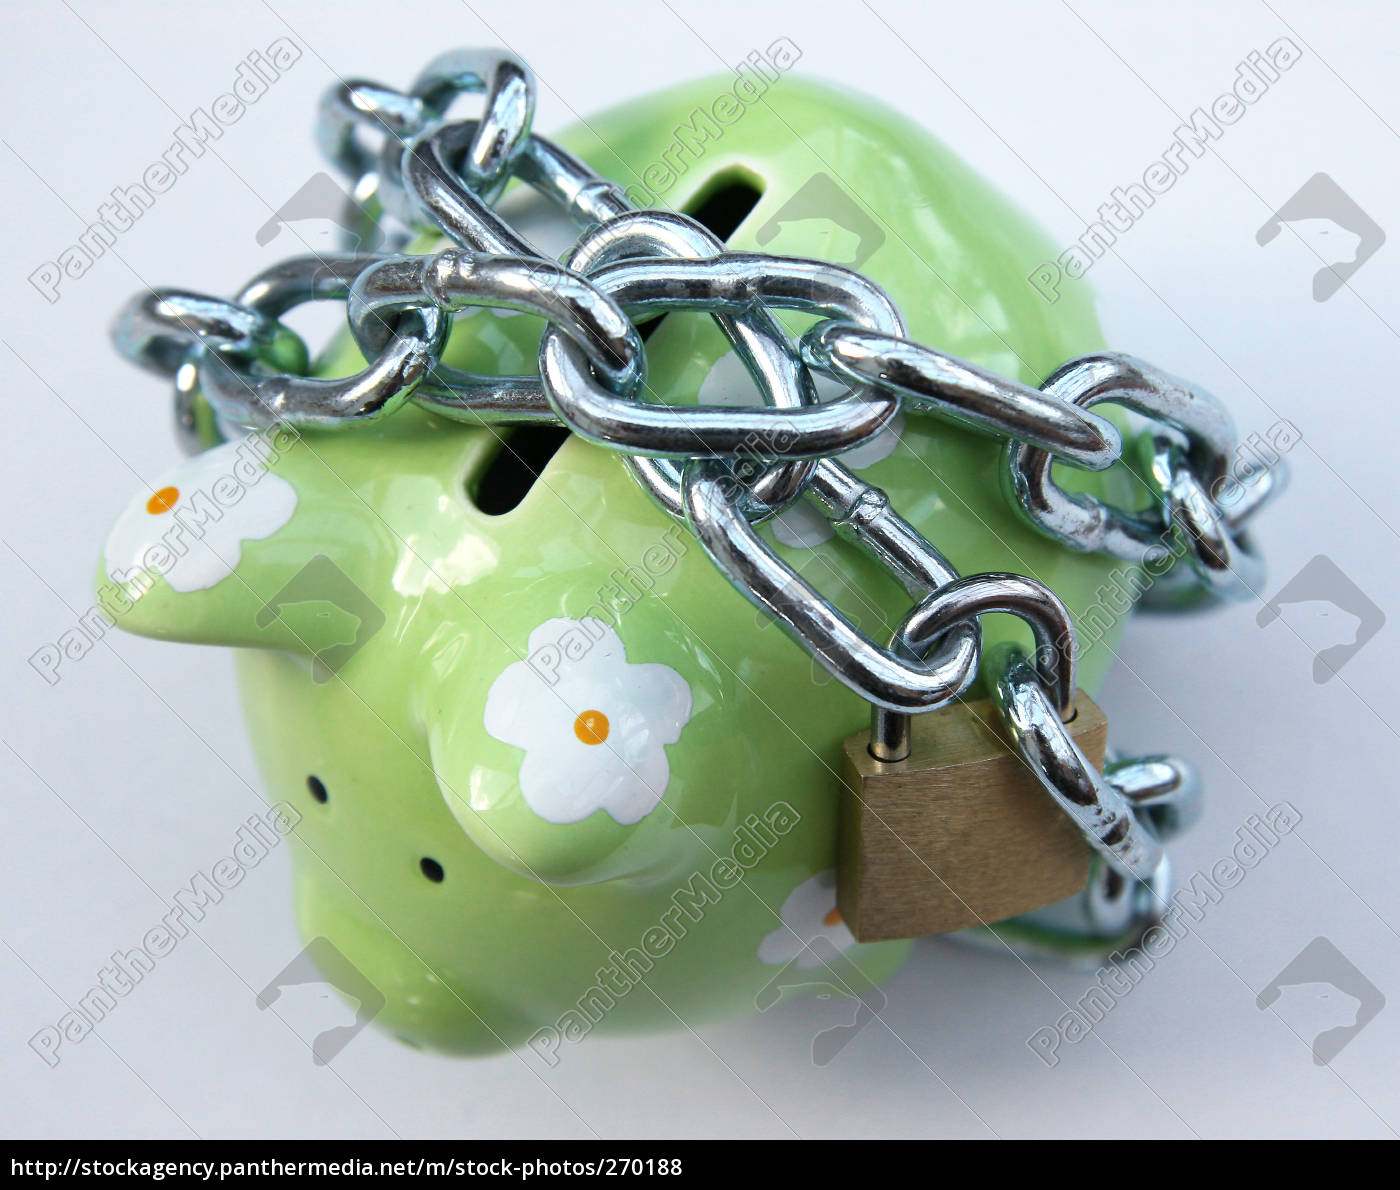 chained, piggy, bank, 1 - 270188